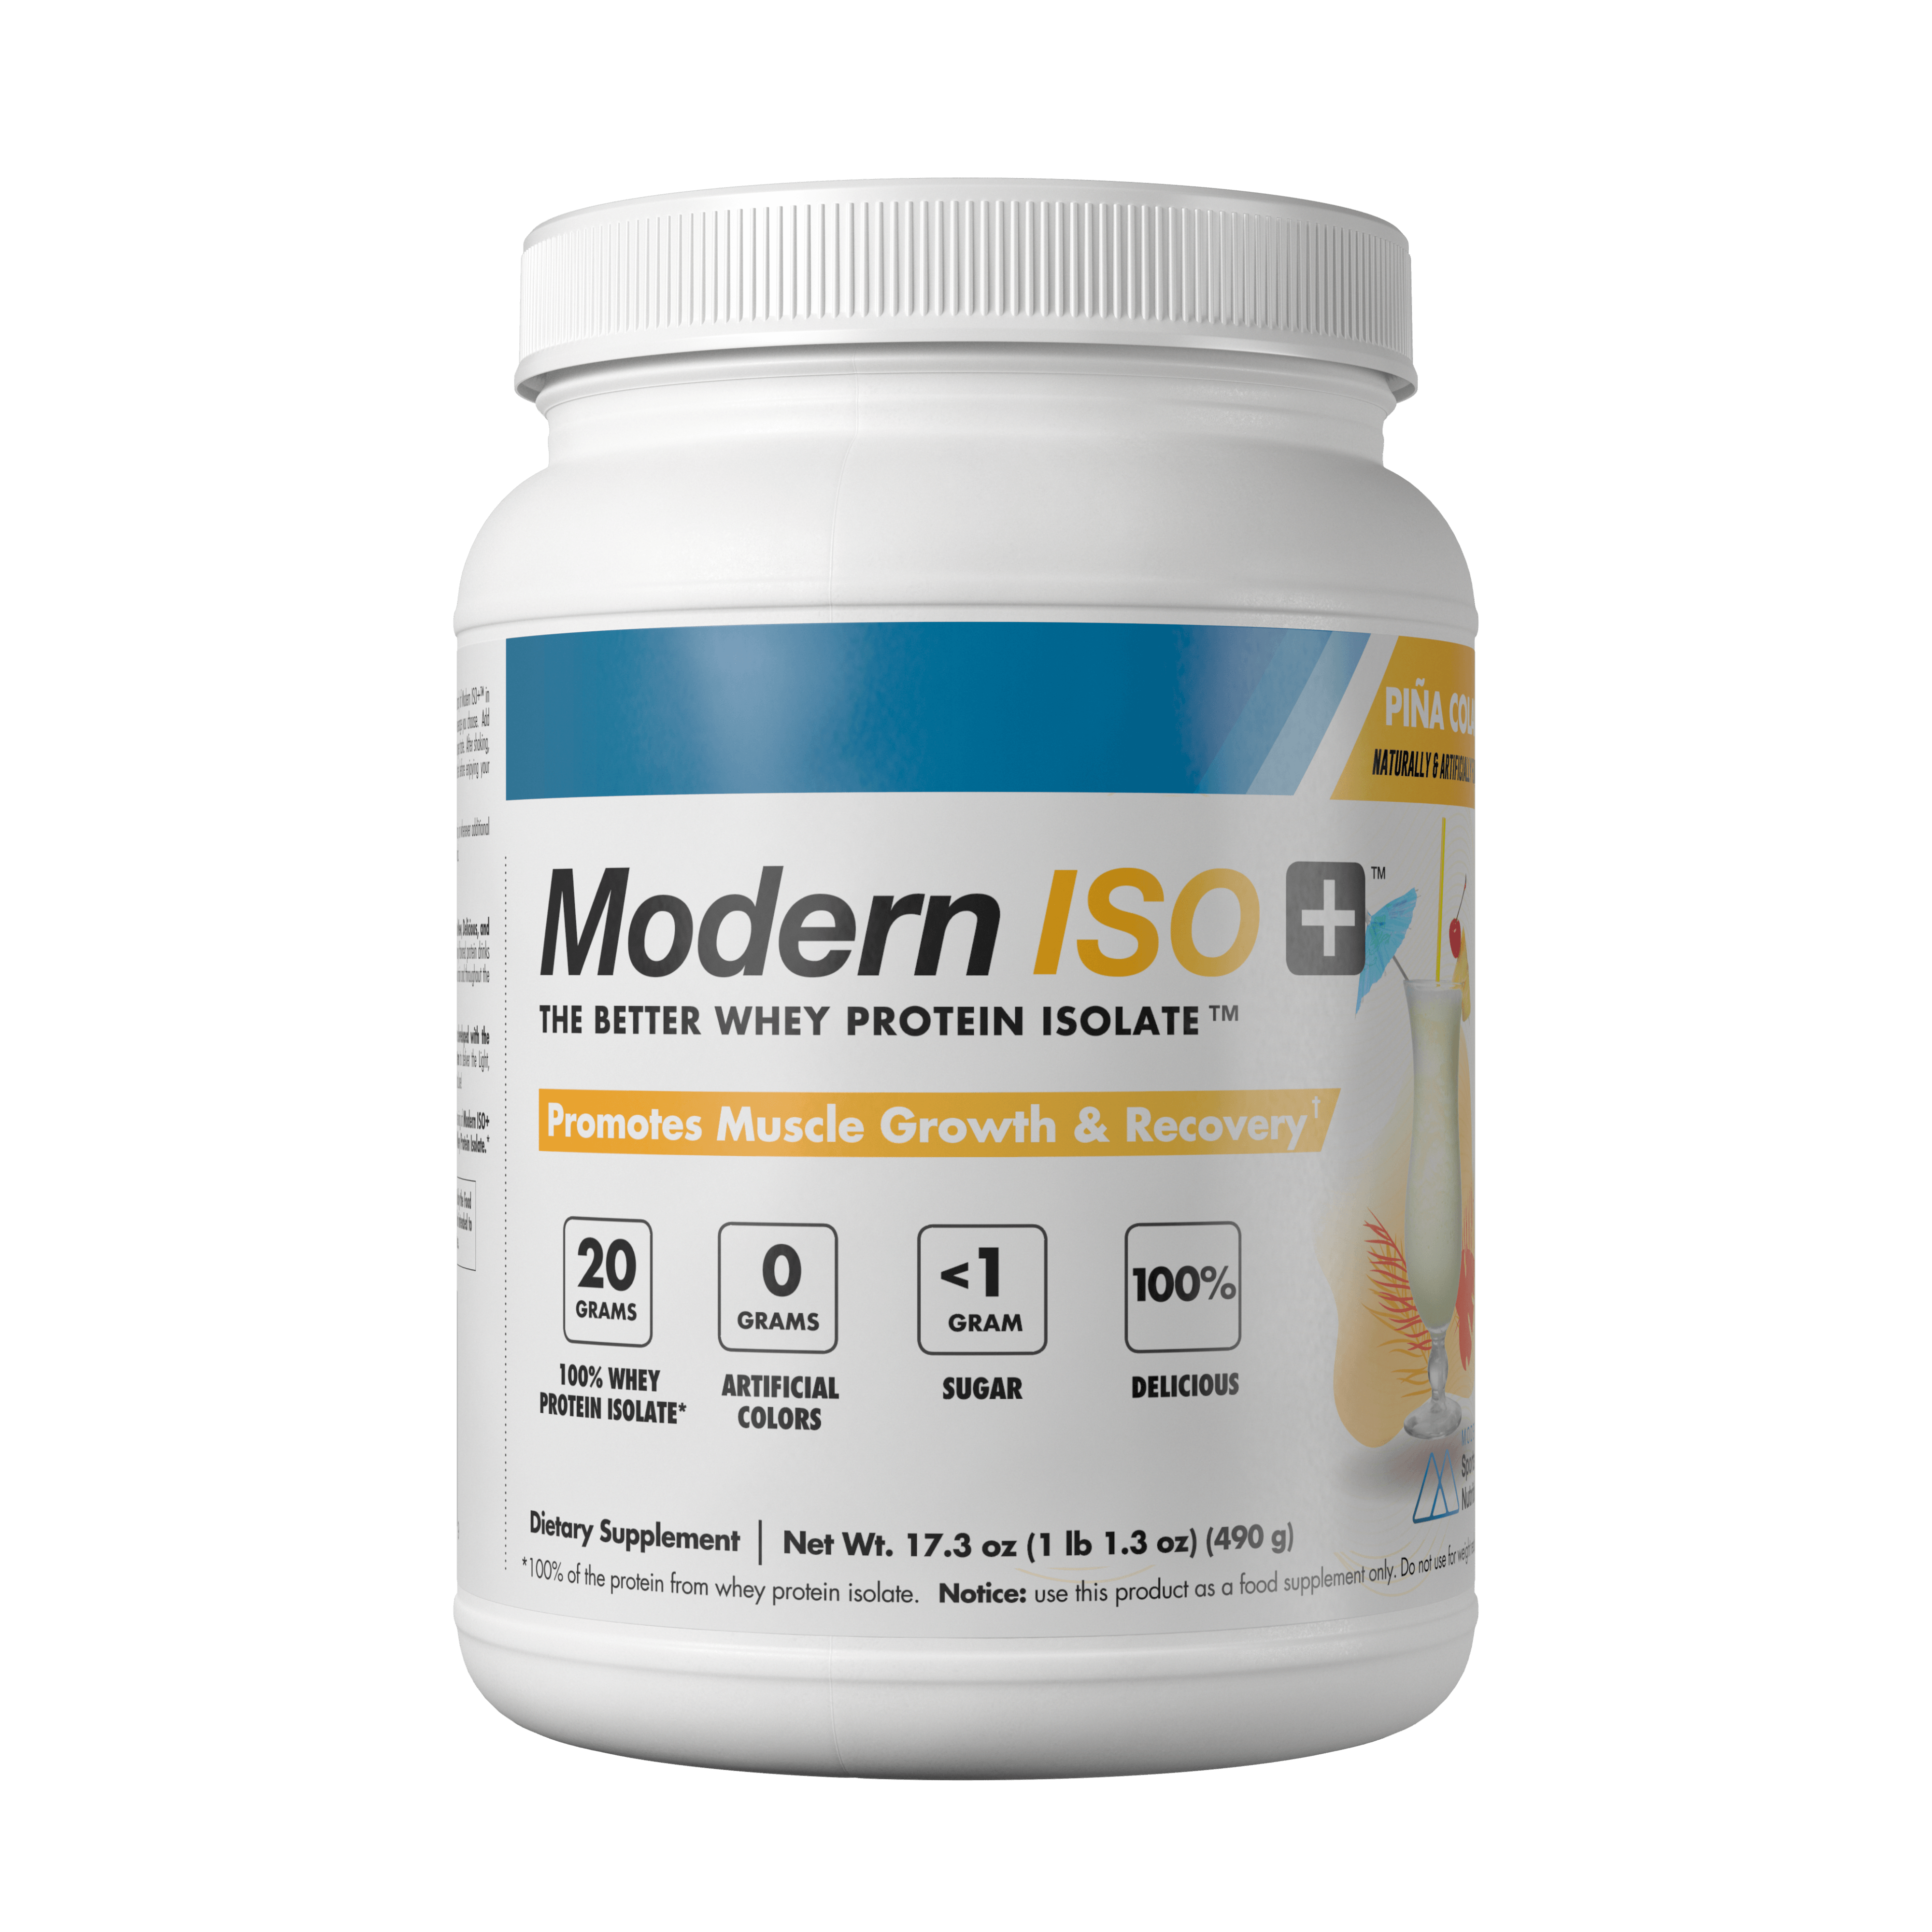 Modern ISO+® 100% Whey Protein Isolate